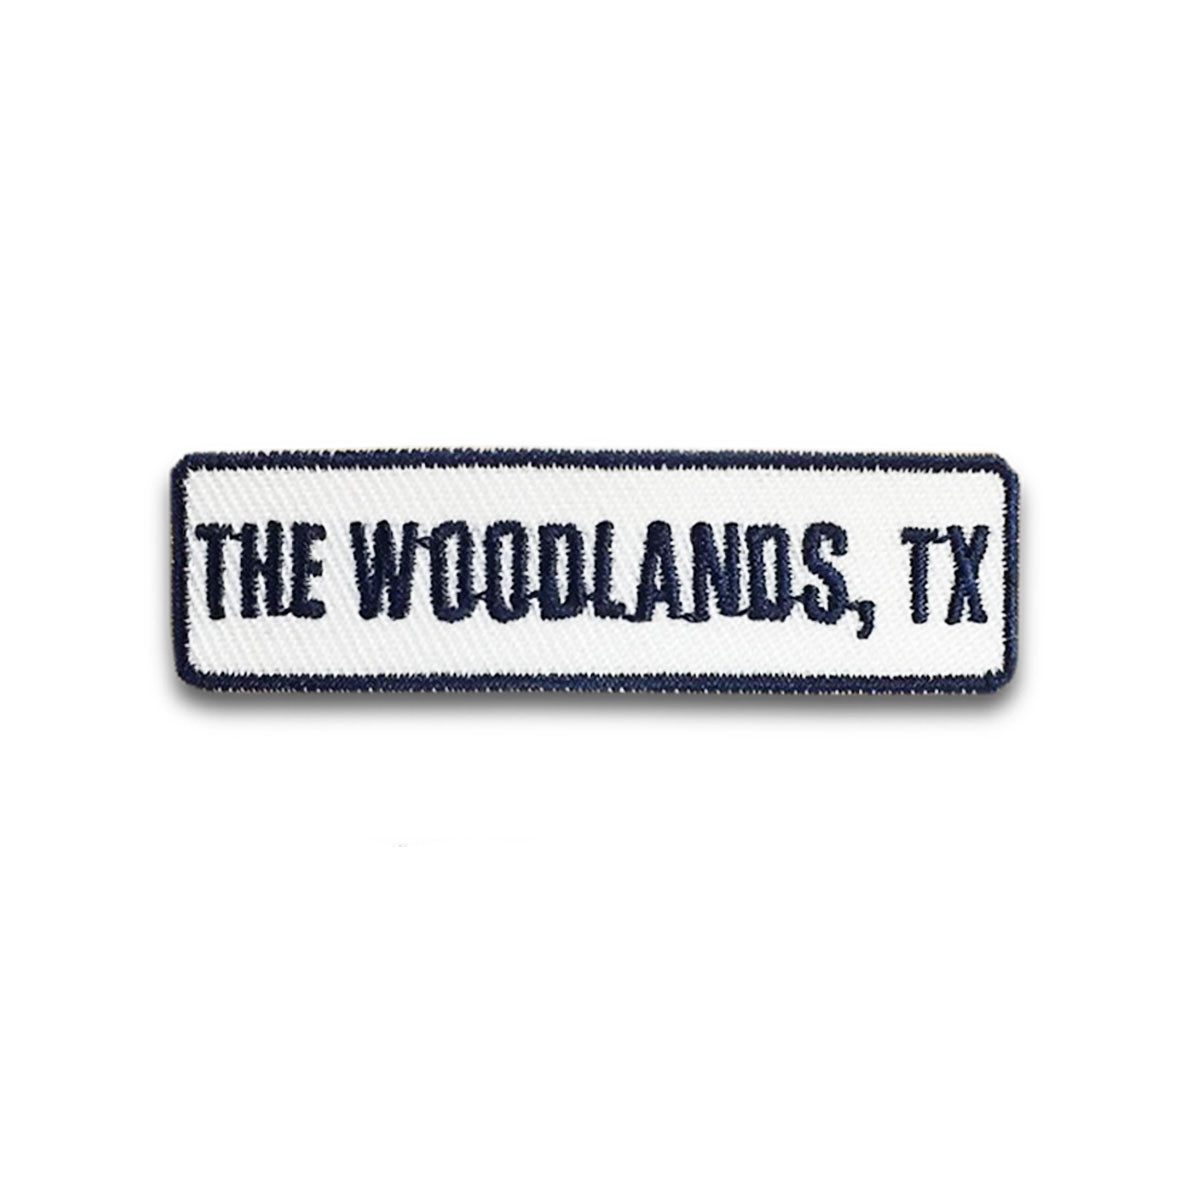 The Woodlands, TX Rocker Patch